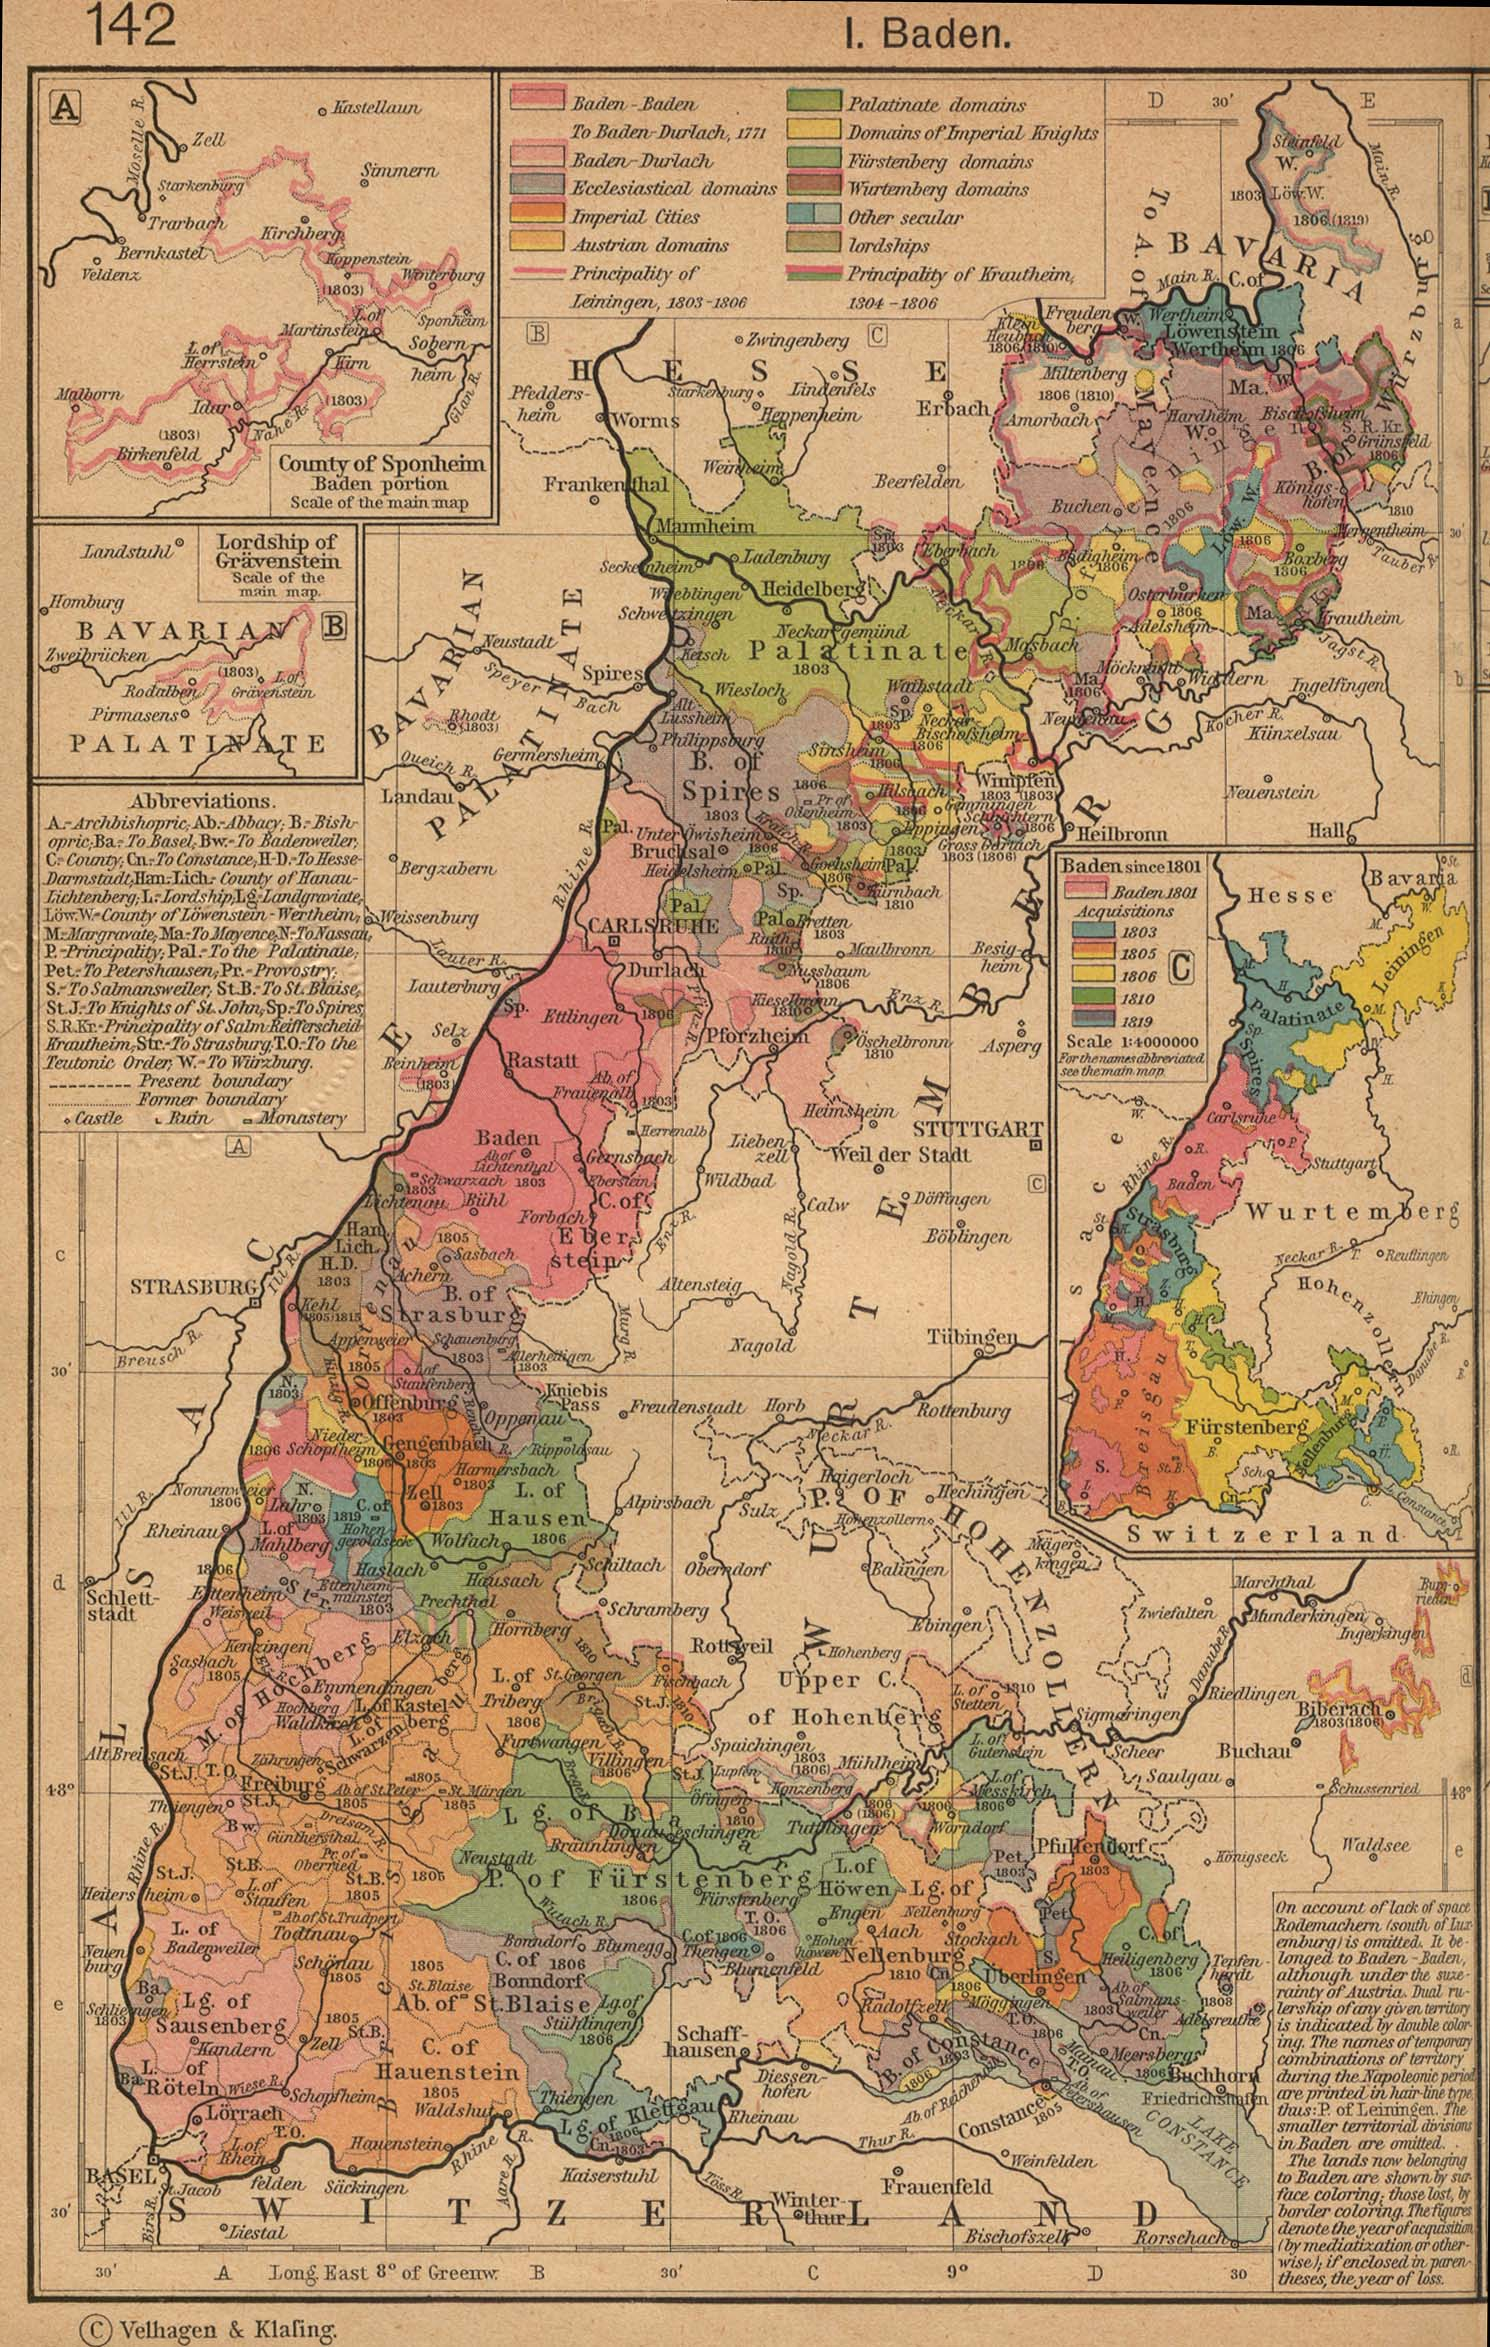 alsace lorraine german empire west 1882 baden